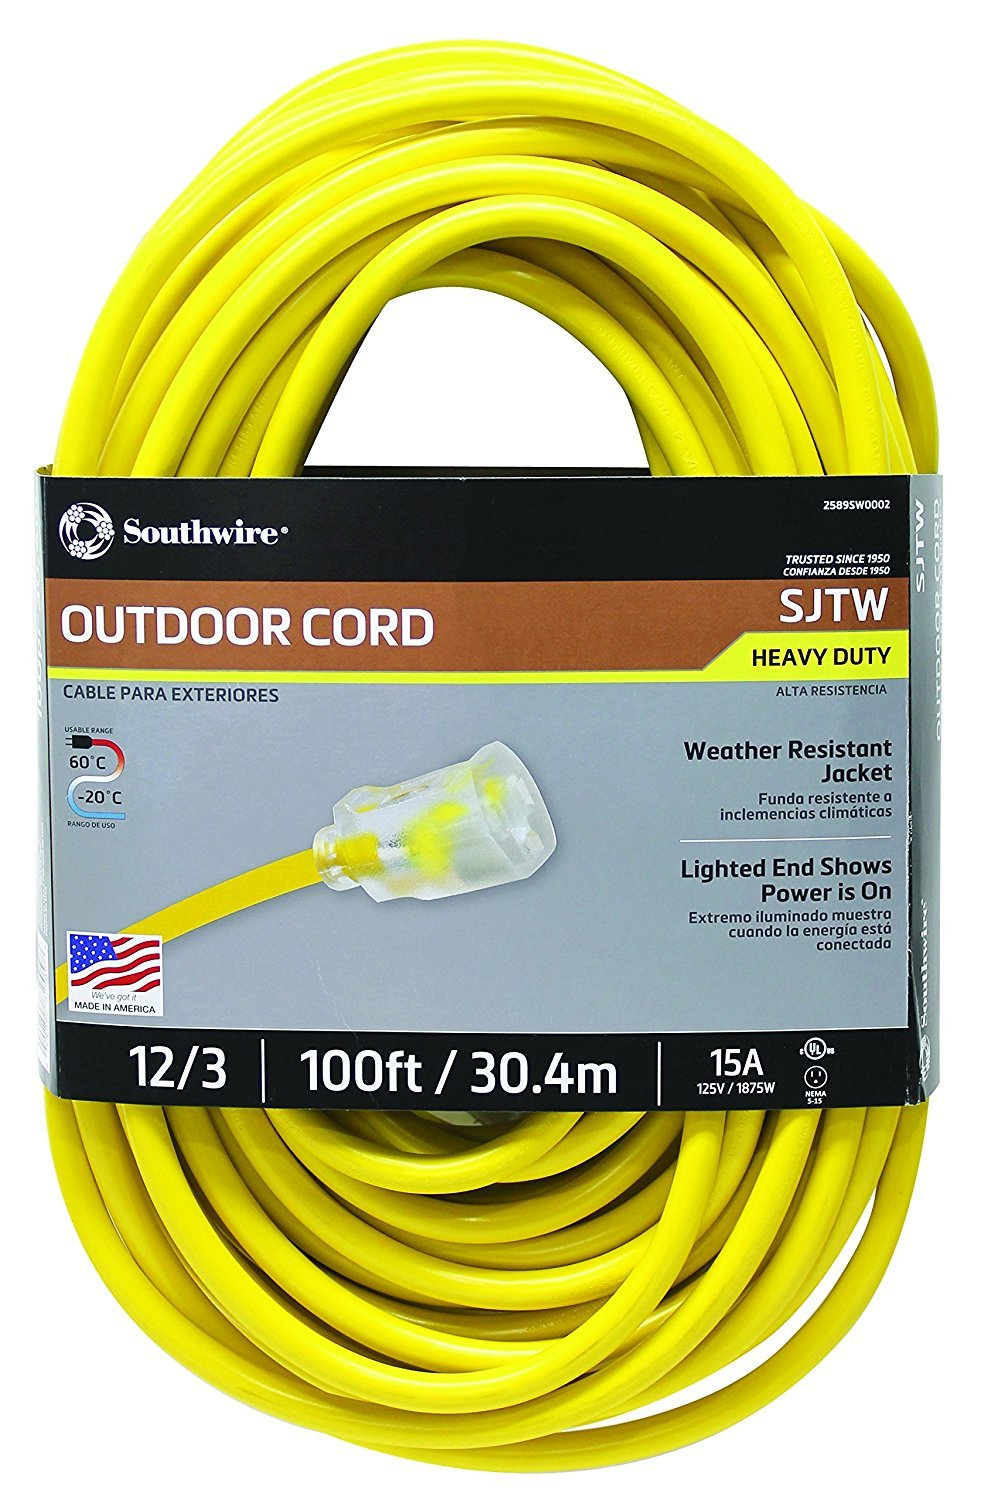 Southwire 02589SW 100 Ft Outdoor Extension Cord- 12/3 AMERICAN MADE SJTW Heavy Duty Grounded 3 Prong Extension Cord- Great for Commercial Use, landscaping services, Gardening, and Major Appliances